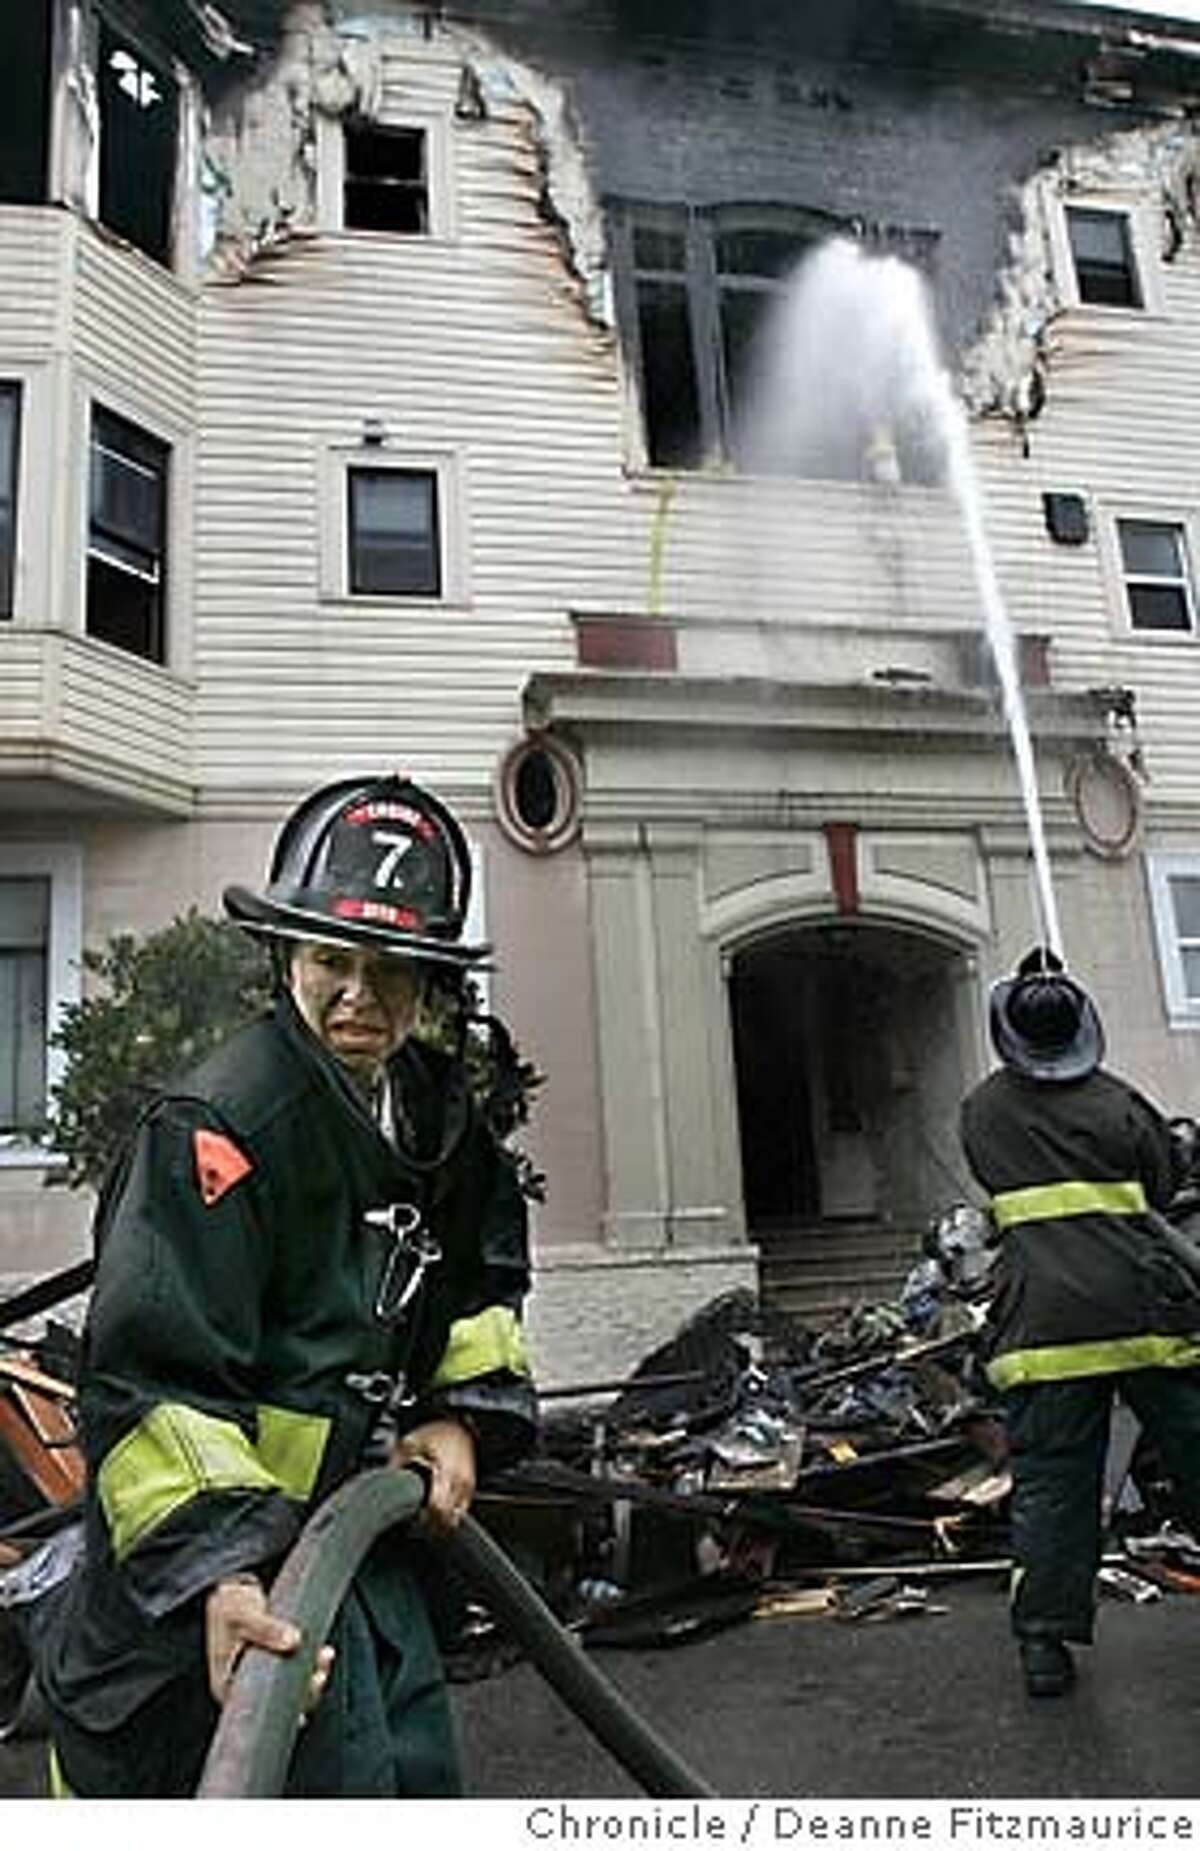 Firefighter Sadie Magaly helps with the hose. Firefighters are on the scene after an early morning fire on Capp Street in the Mission District. Deanne Fitzmaurice / San Francisco Chronicle